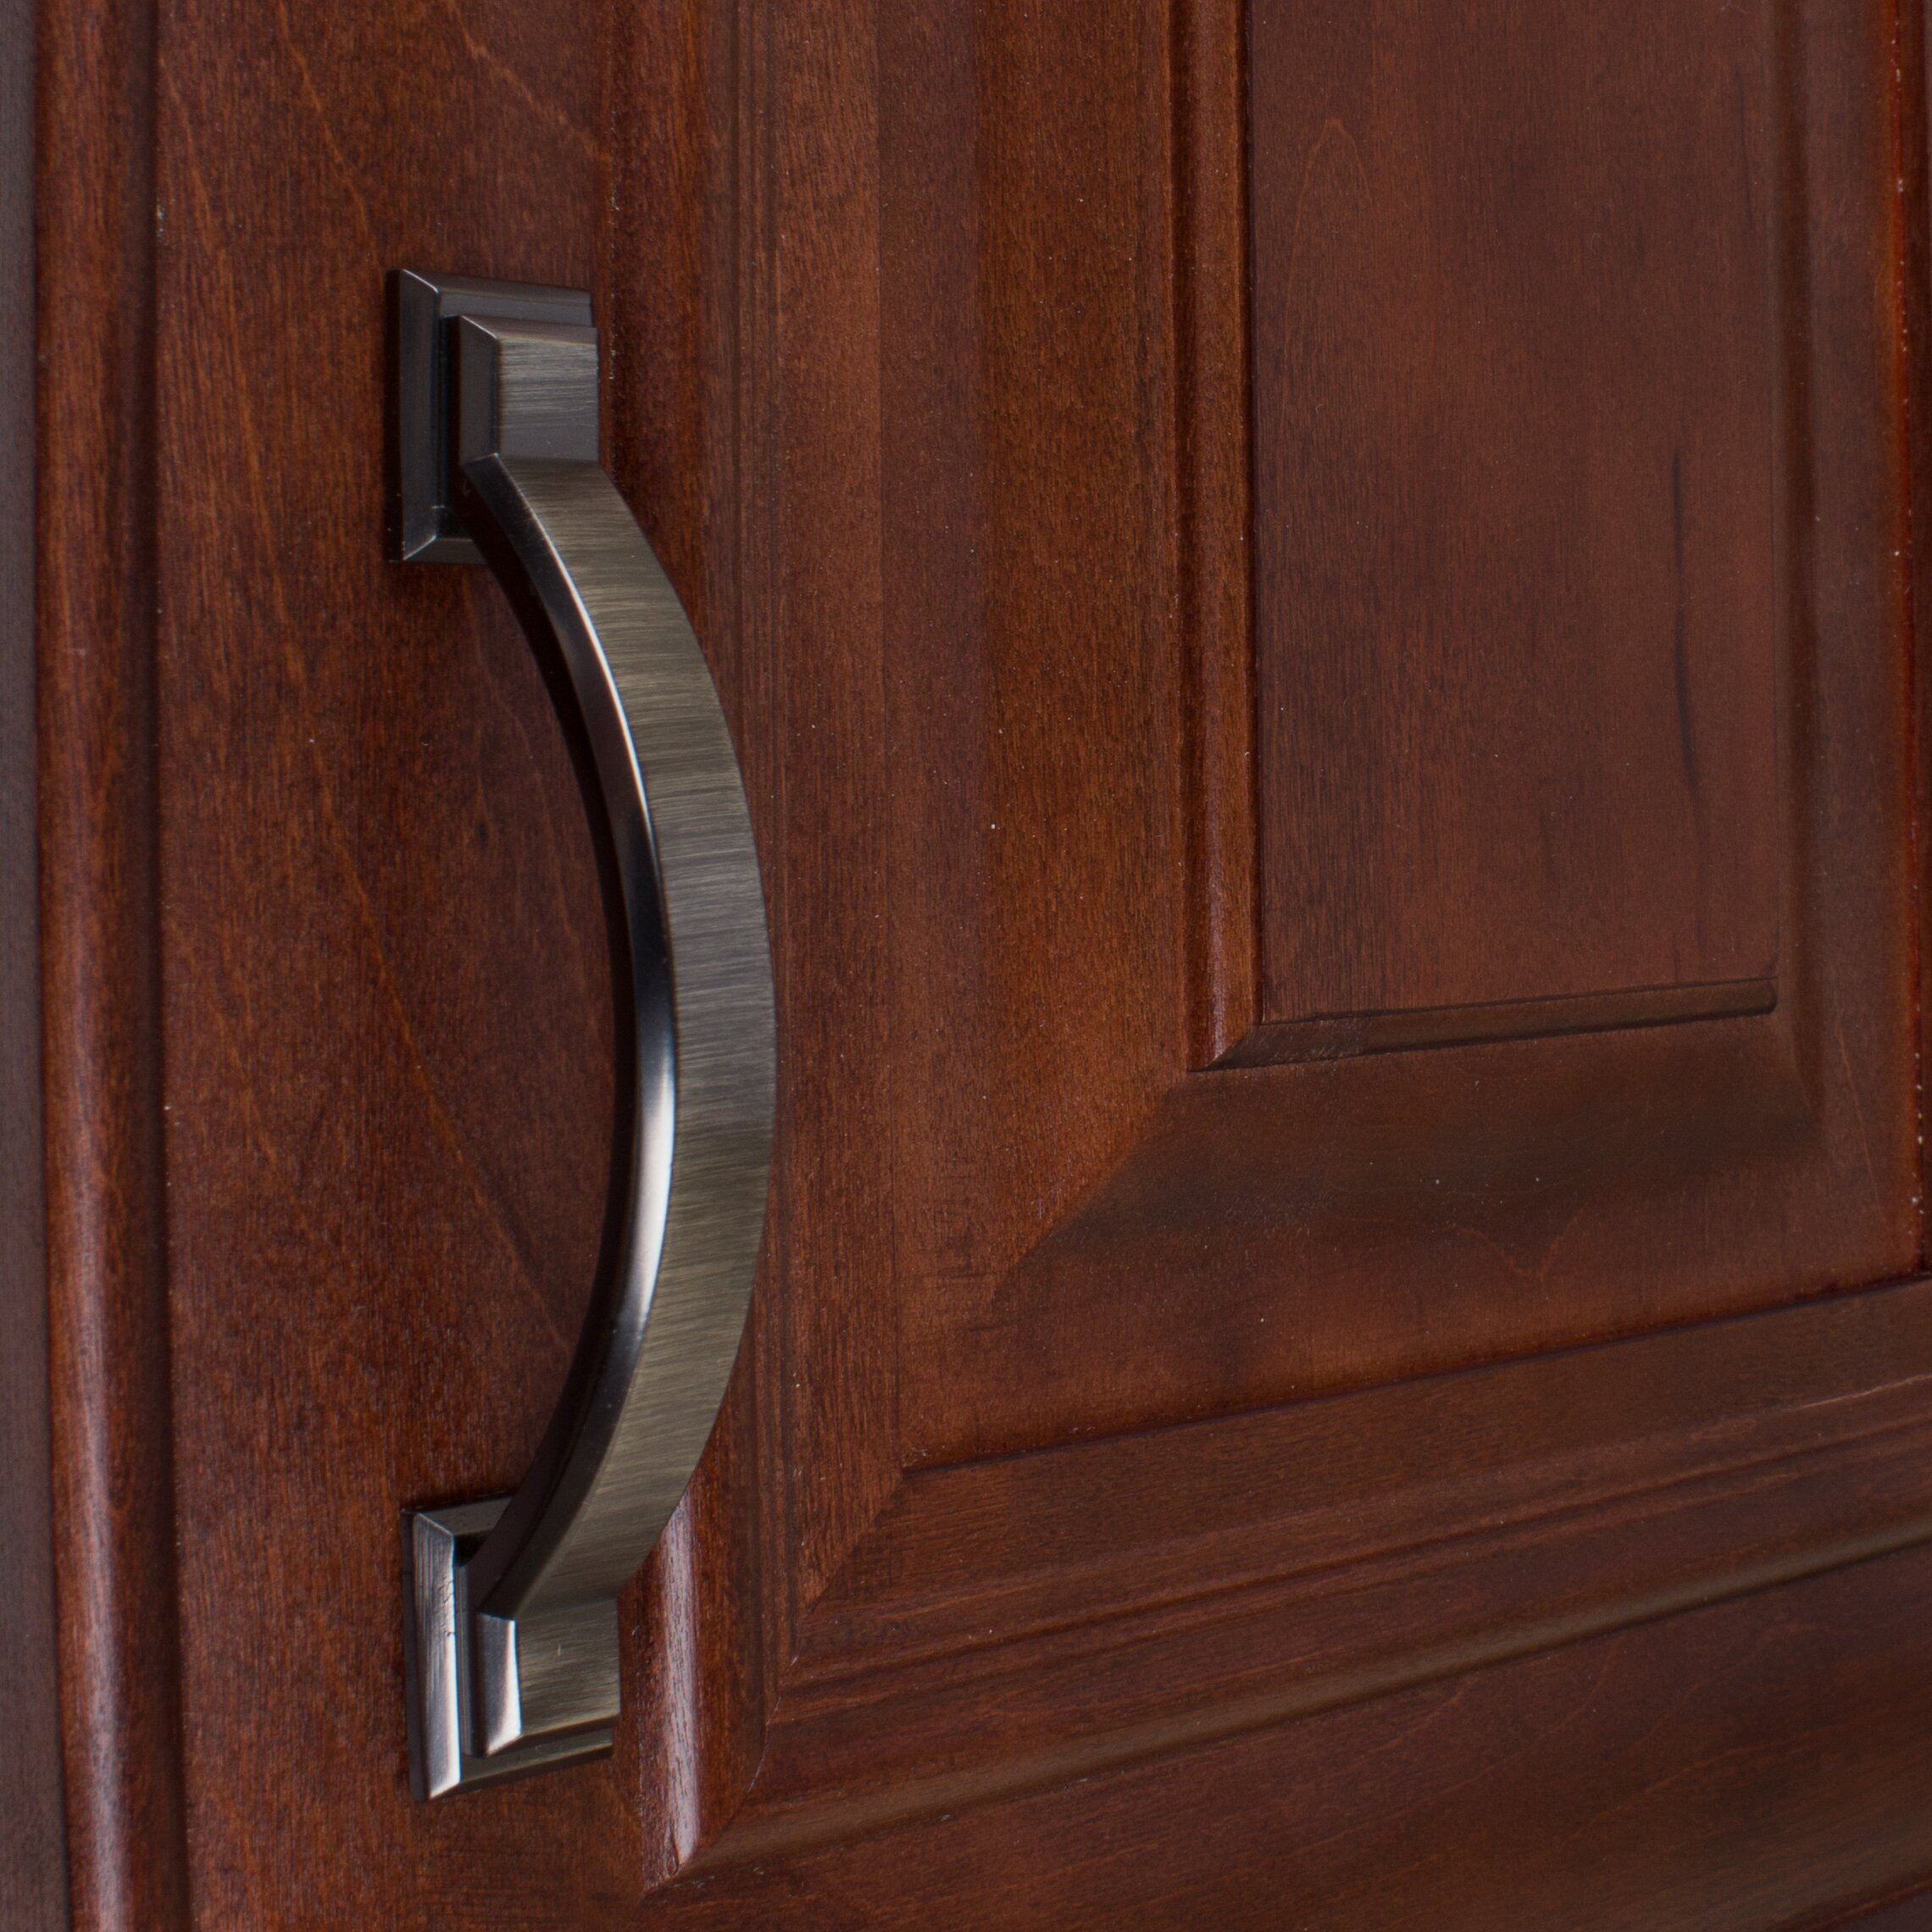 Gliderite hardware arched square cabinet 4 3 8 center for Arched cabinet pulls